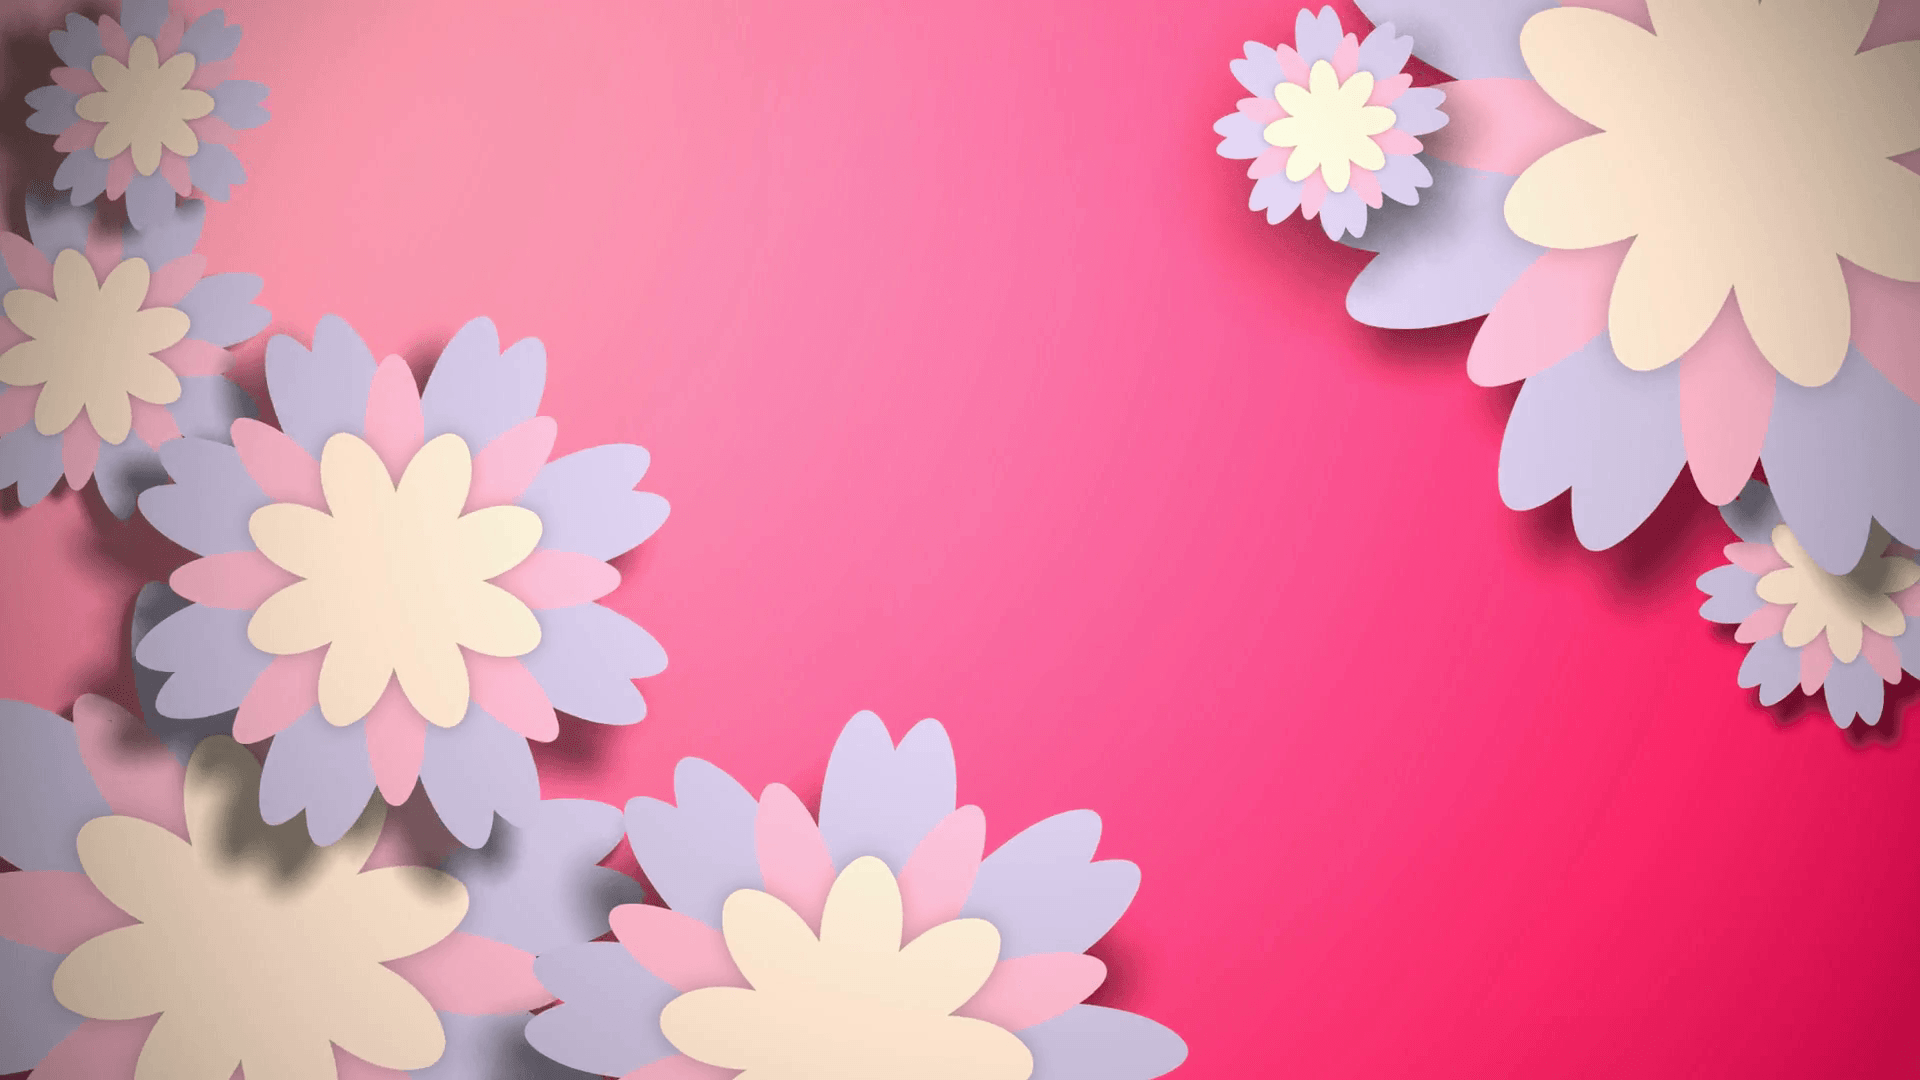 Animated wallpapers with pastel color flowers on pink backgrounds